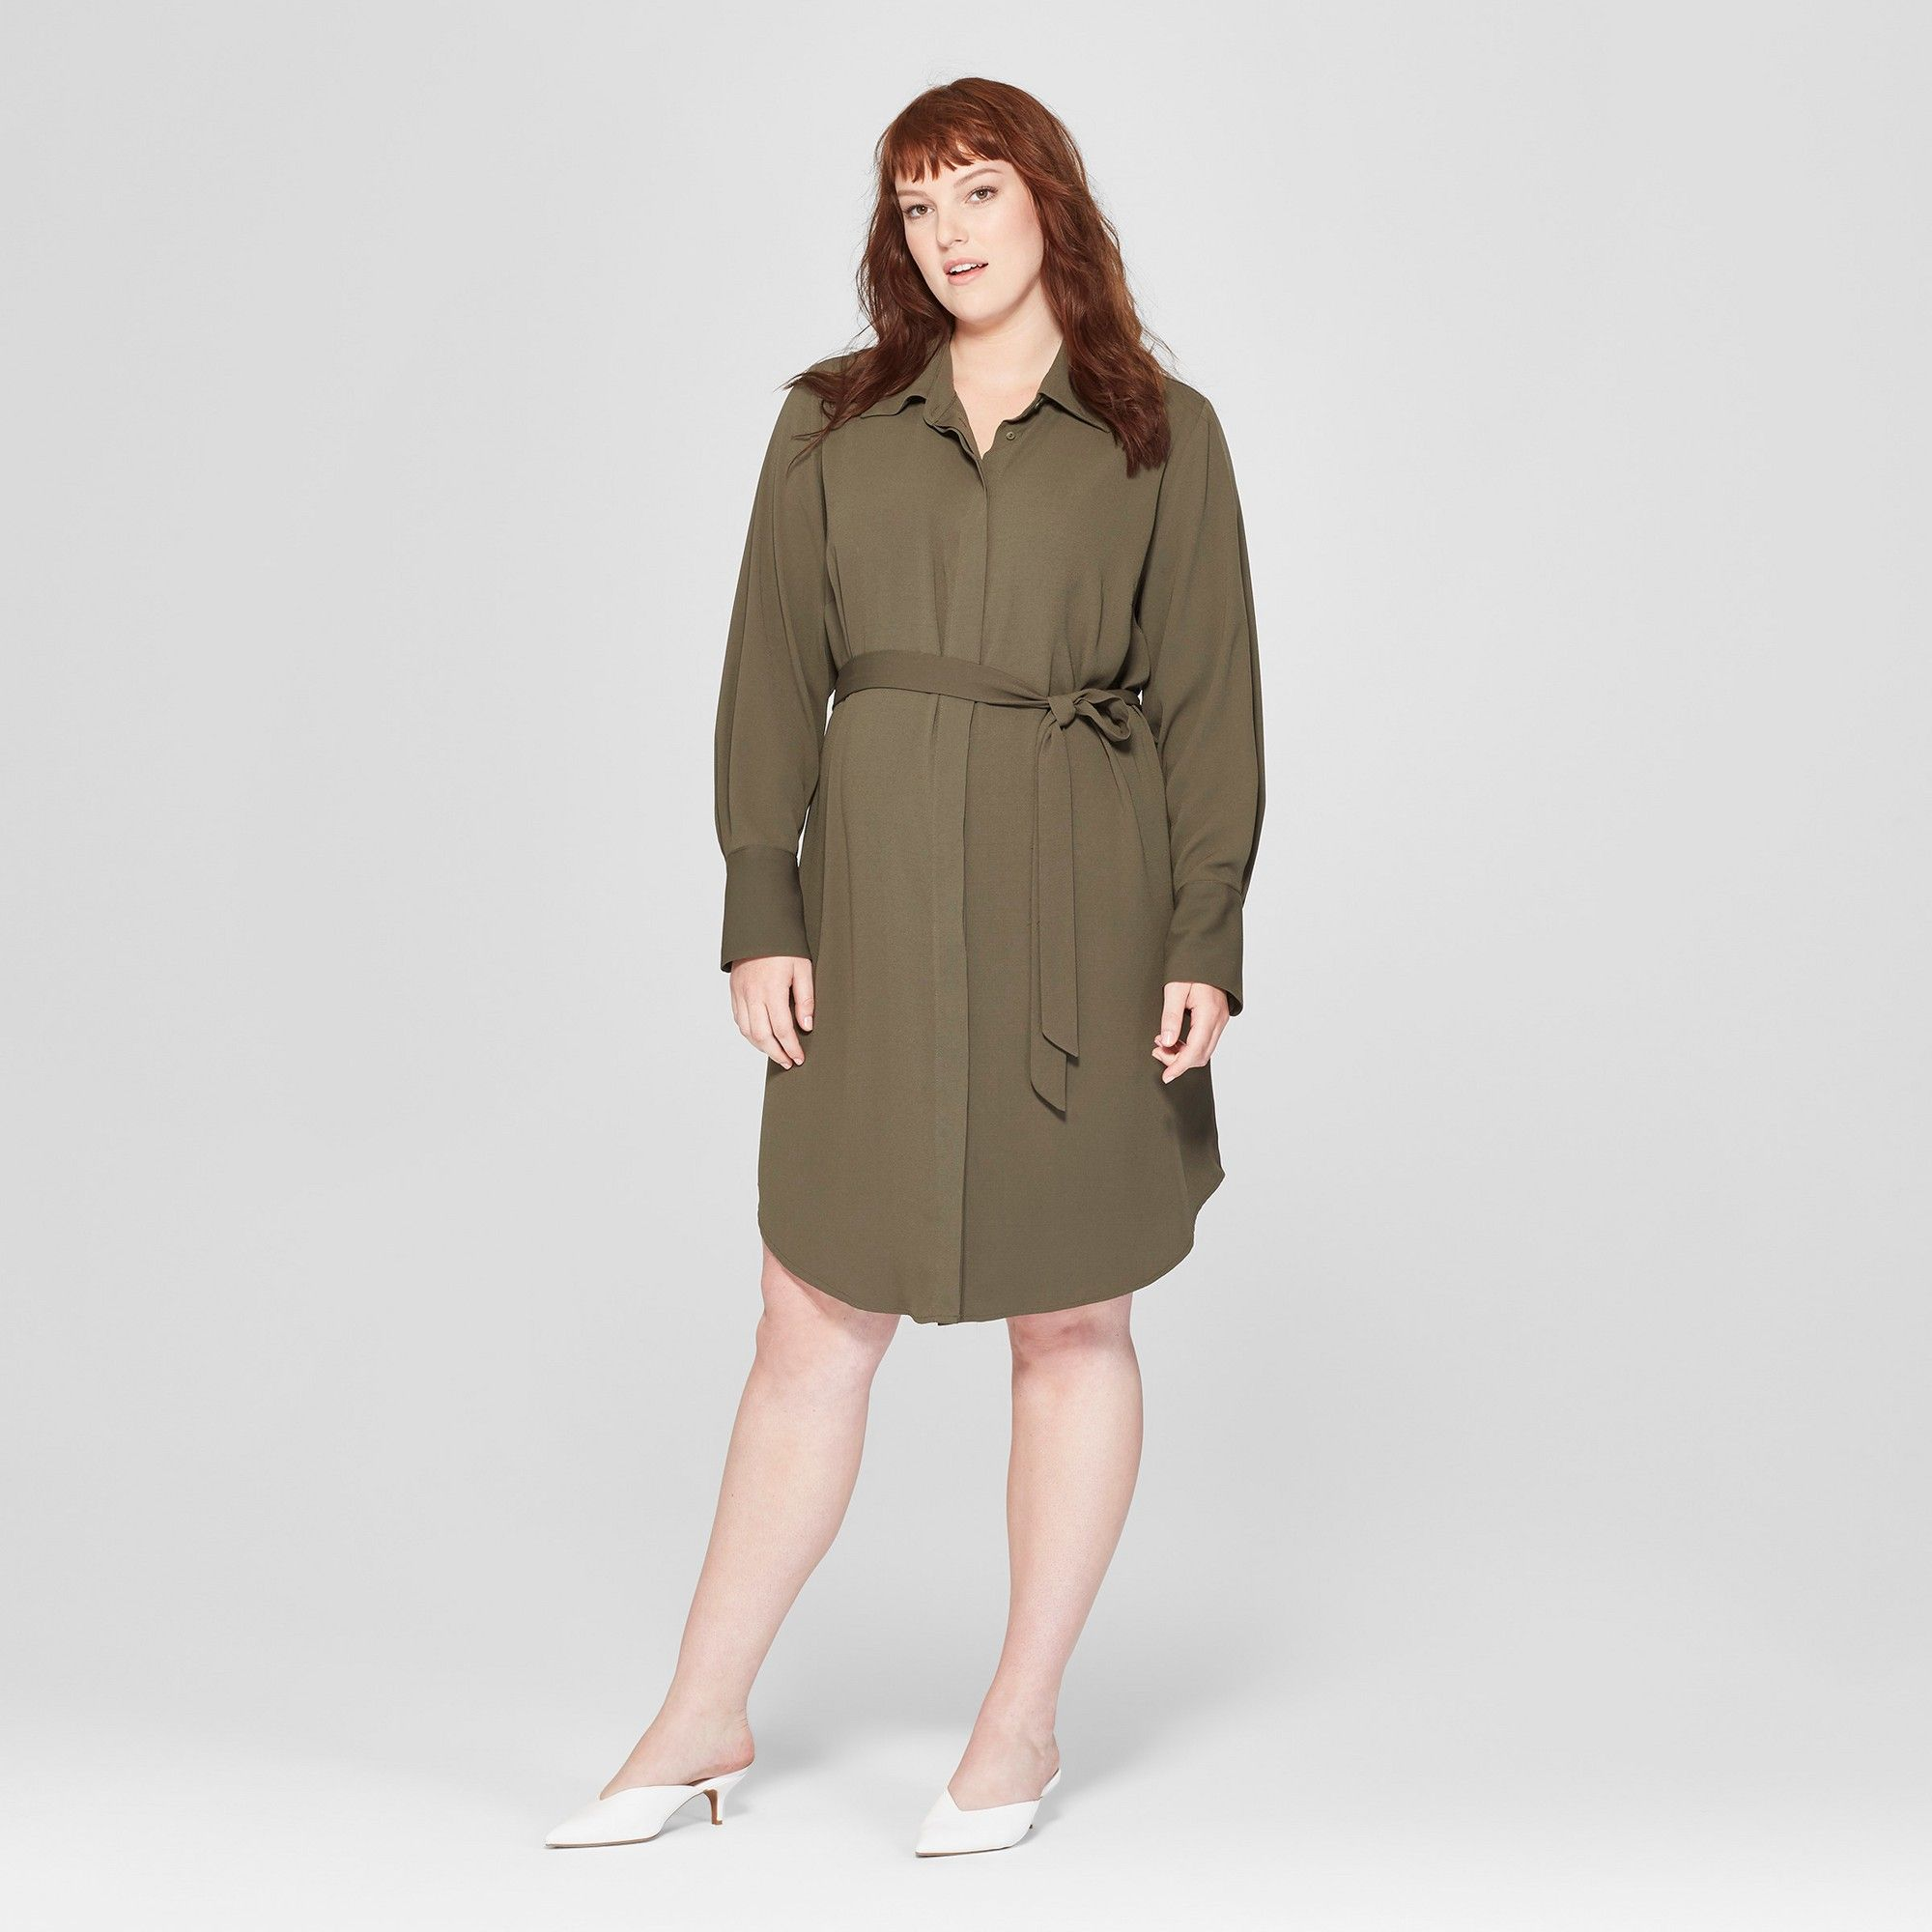 Womens Plus Size Long Sleeve Collared Shirt Dress Prologue Olive